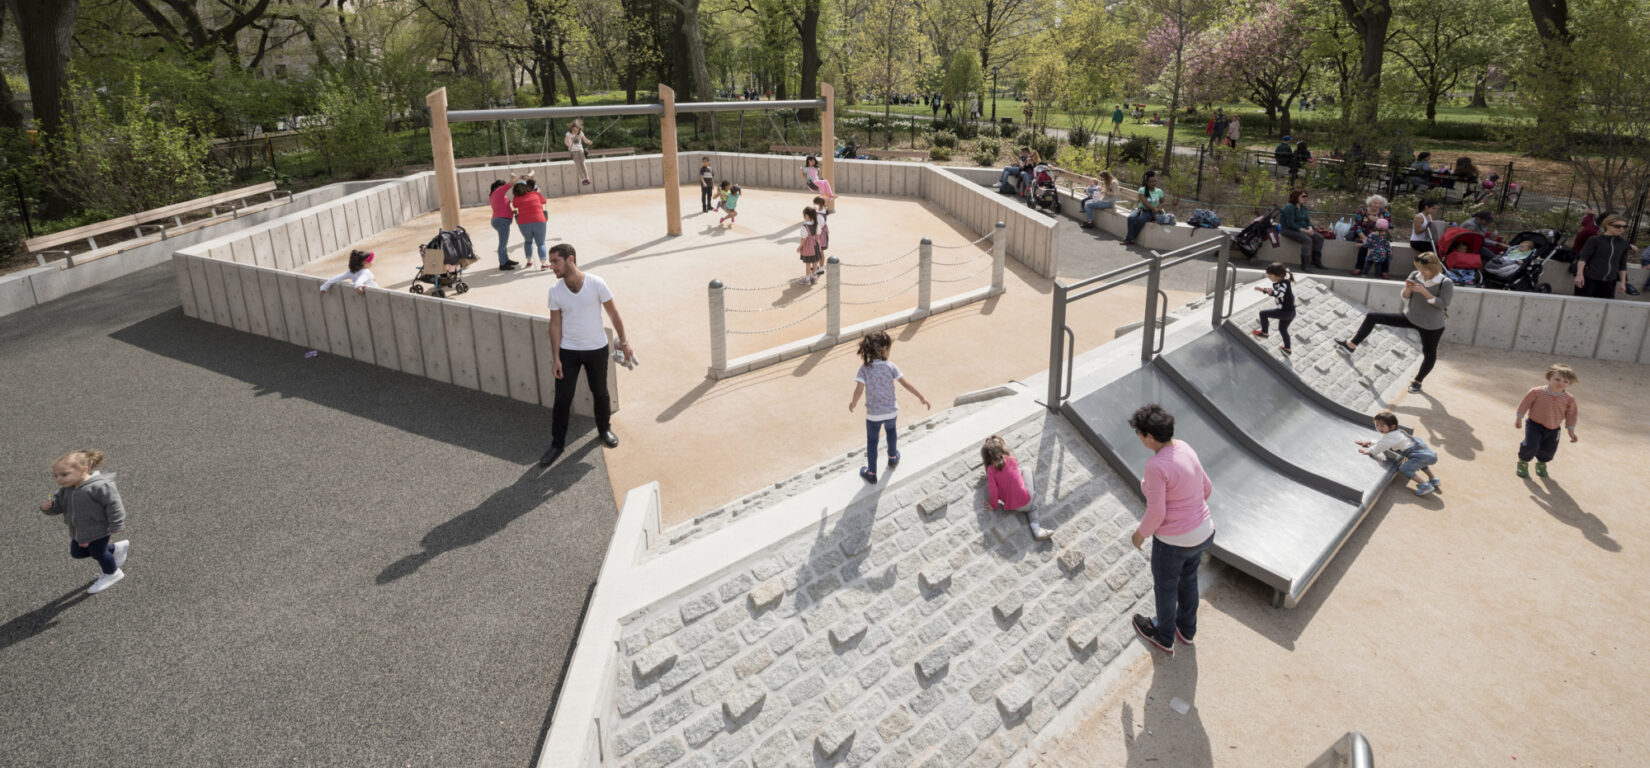 Children and caregivers enjoying the pyramid and slide in the playground